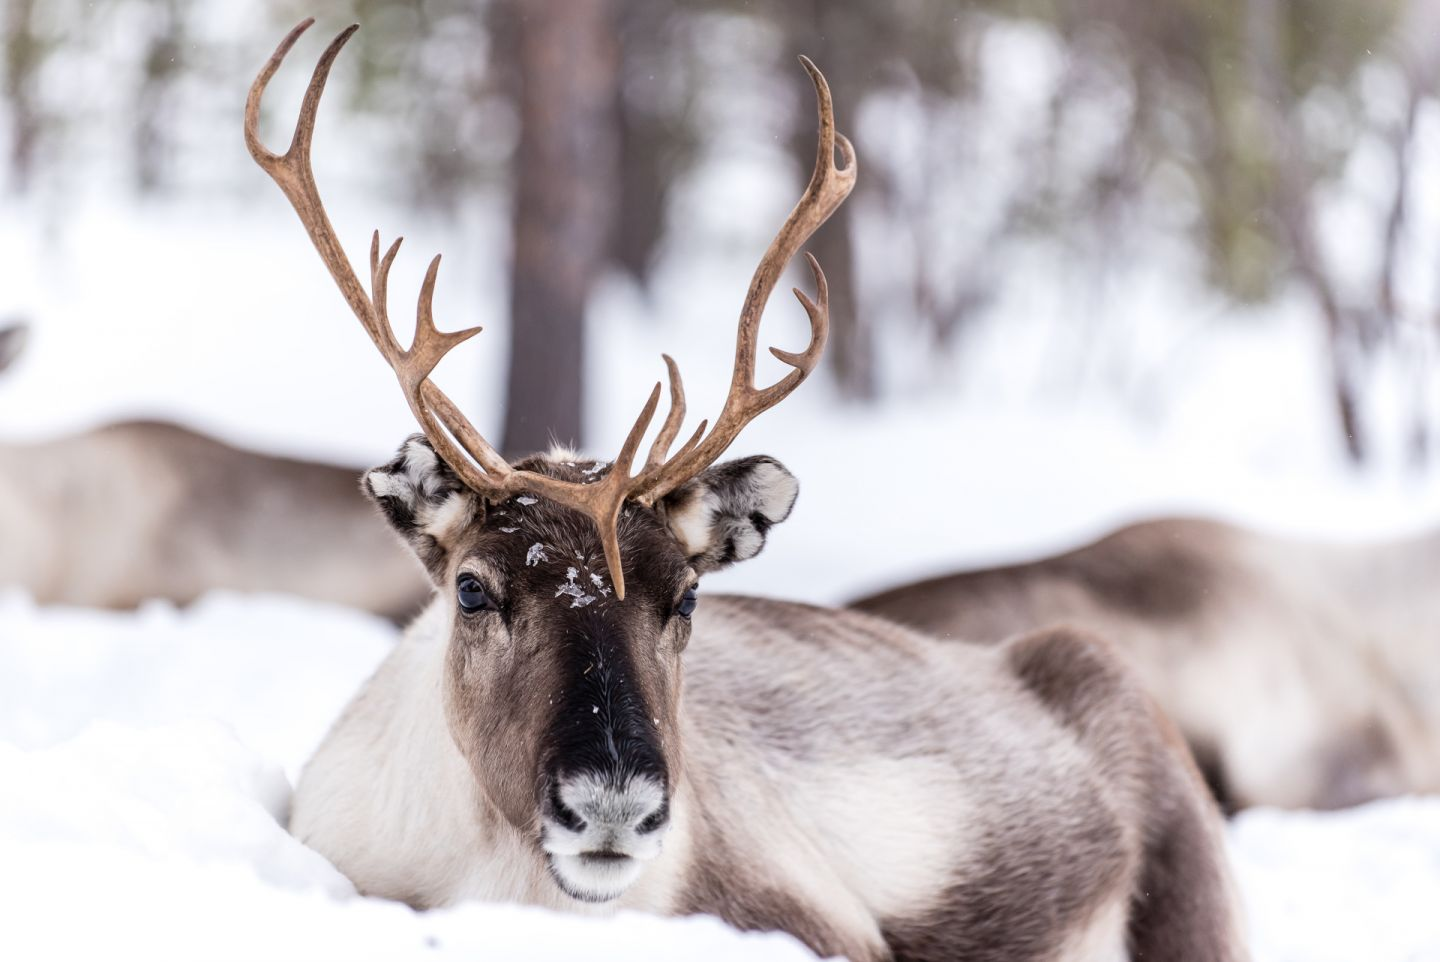 A reindeer enjoys the slow life--you should too! Visit Finnish Lapland in winter.